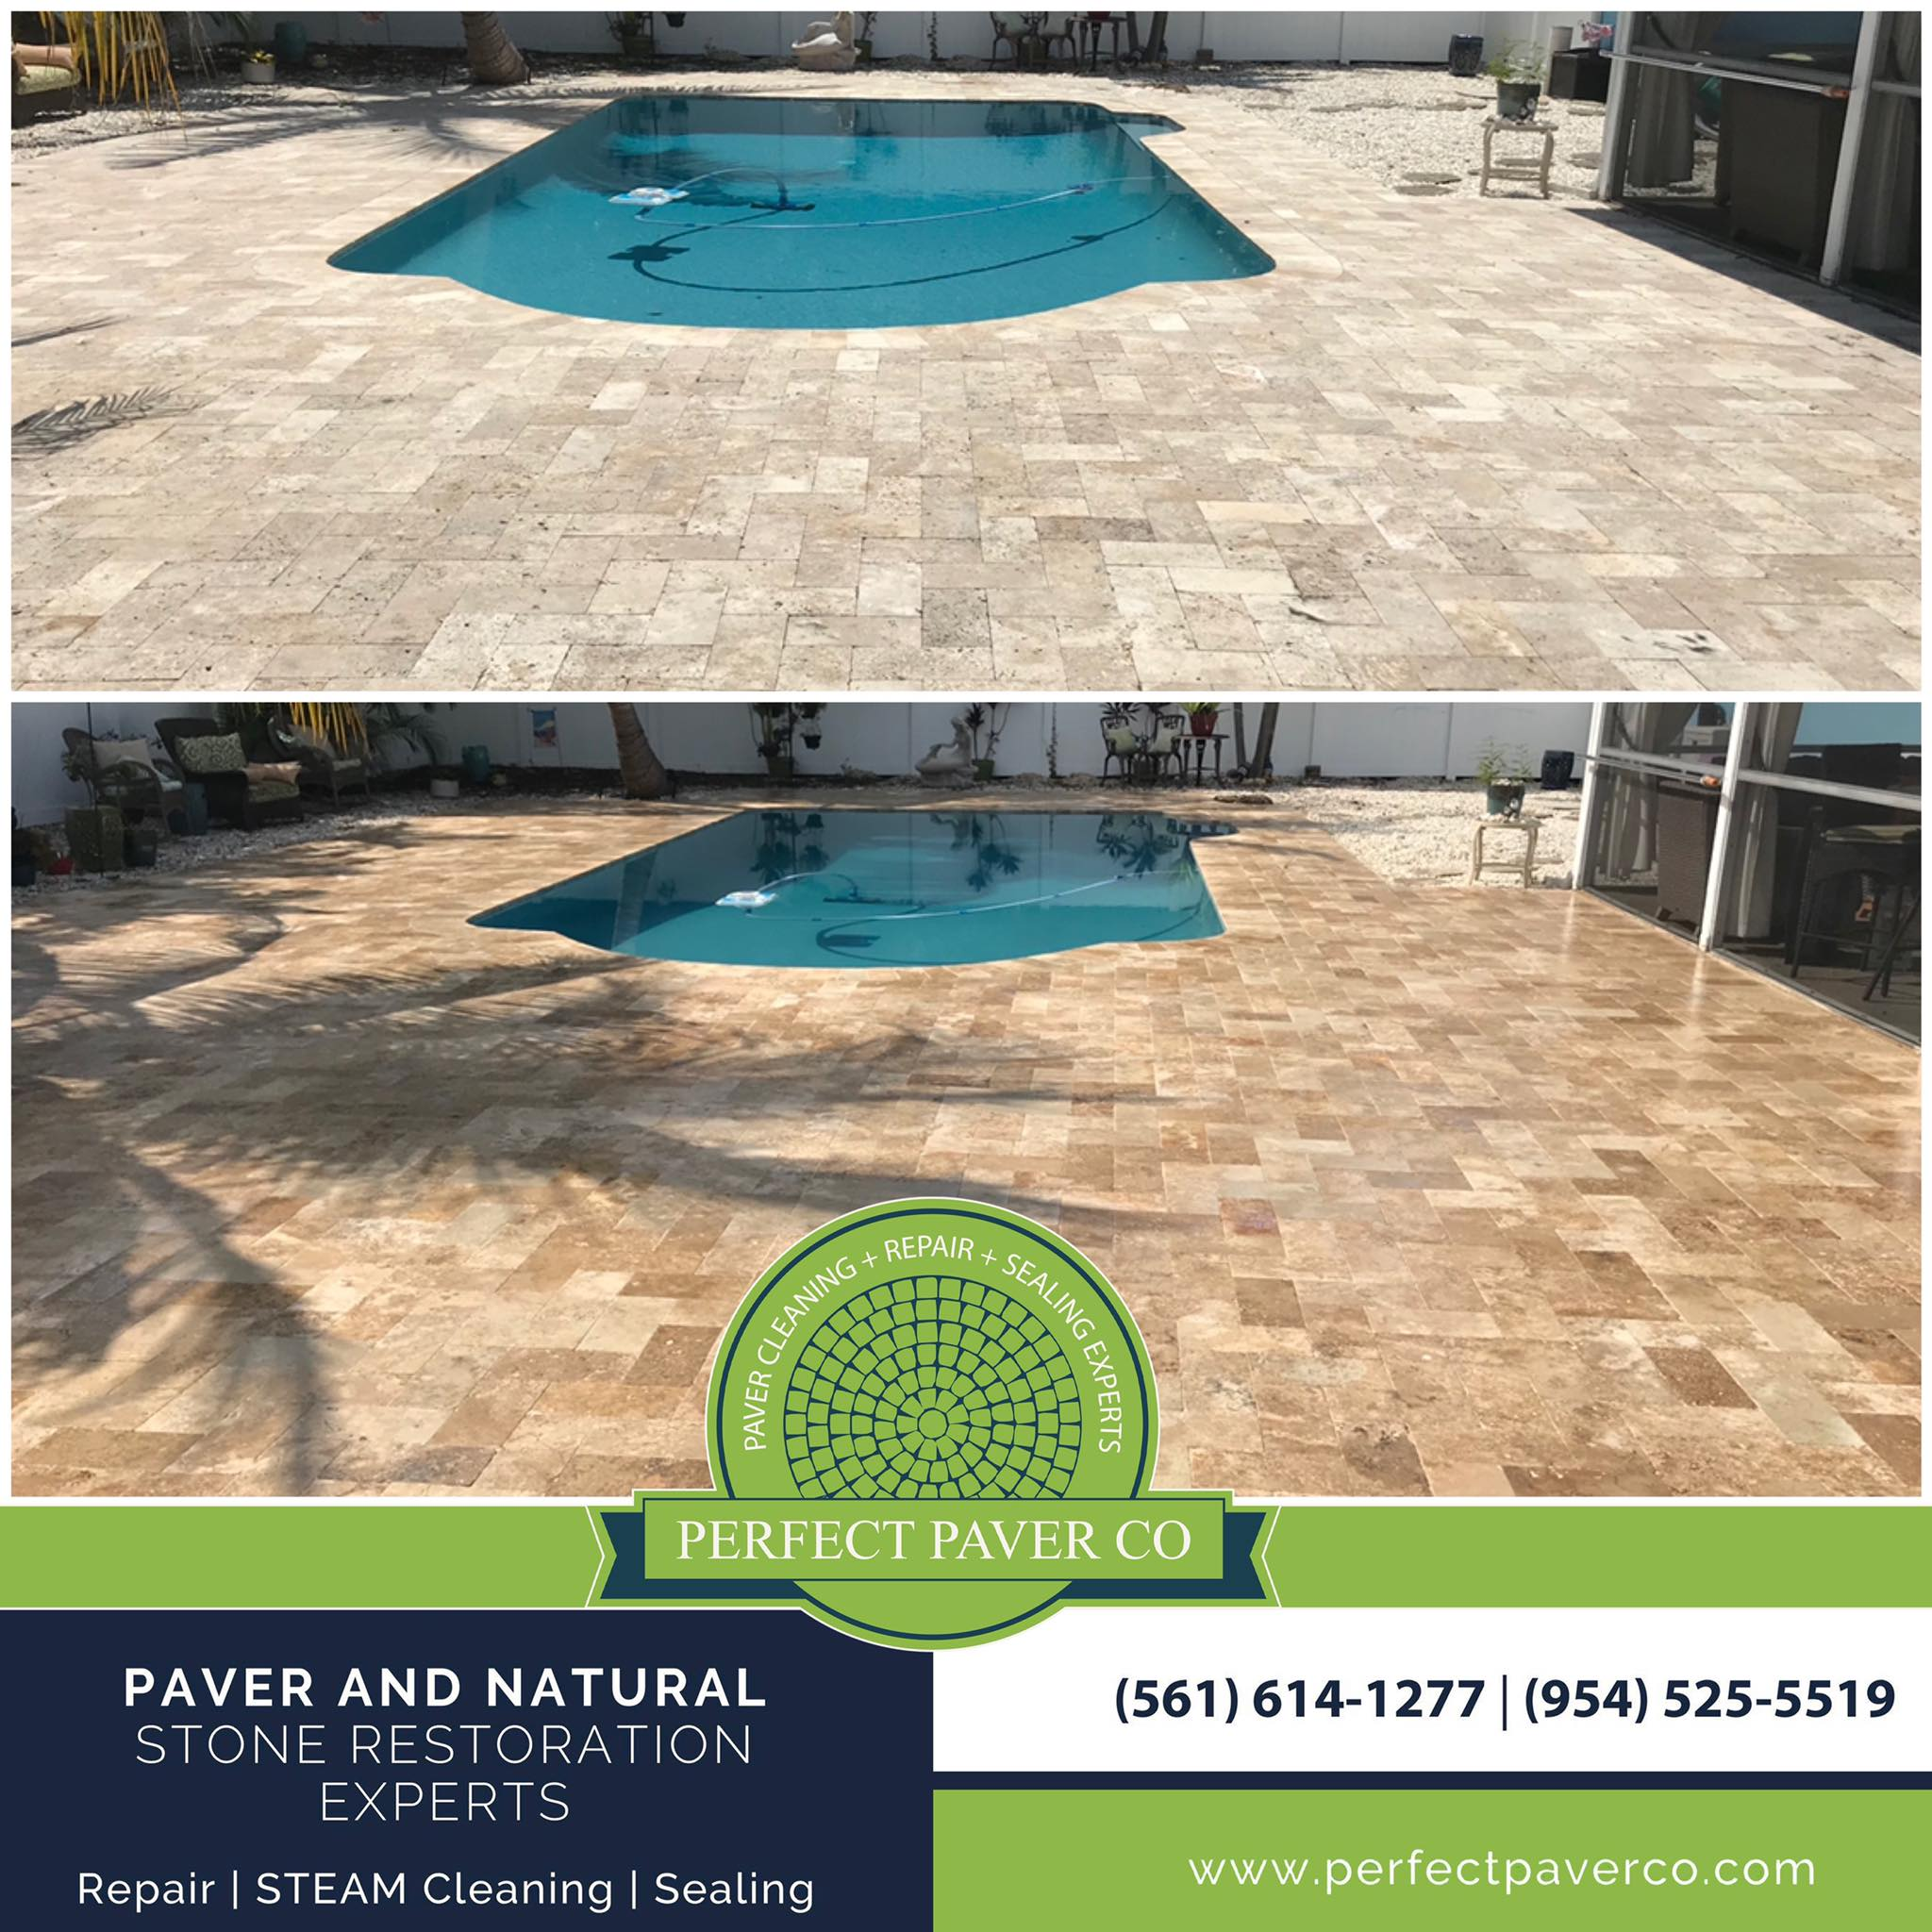 Perfect Paver Co of Palm Beach Gardens